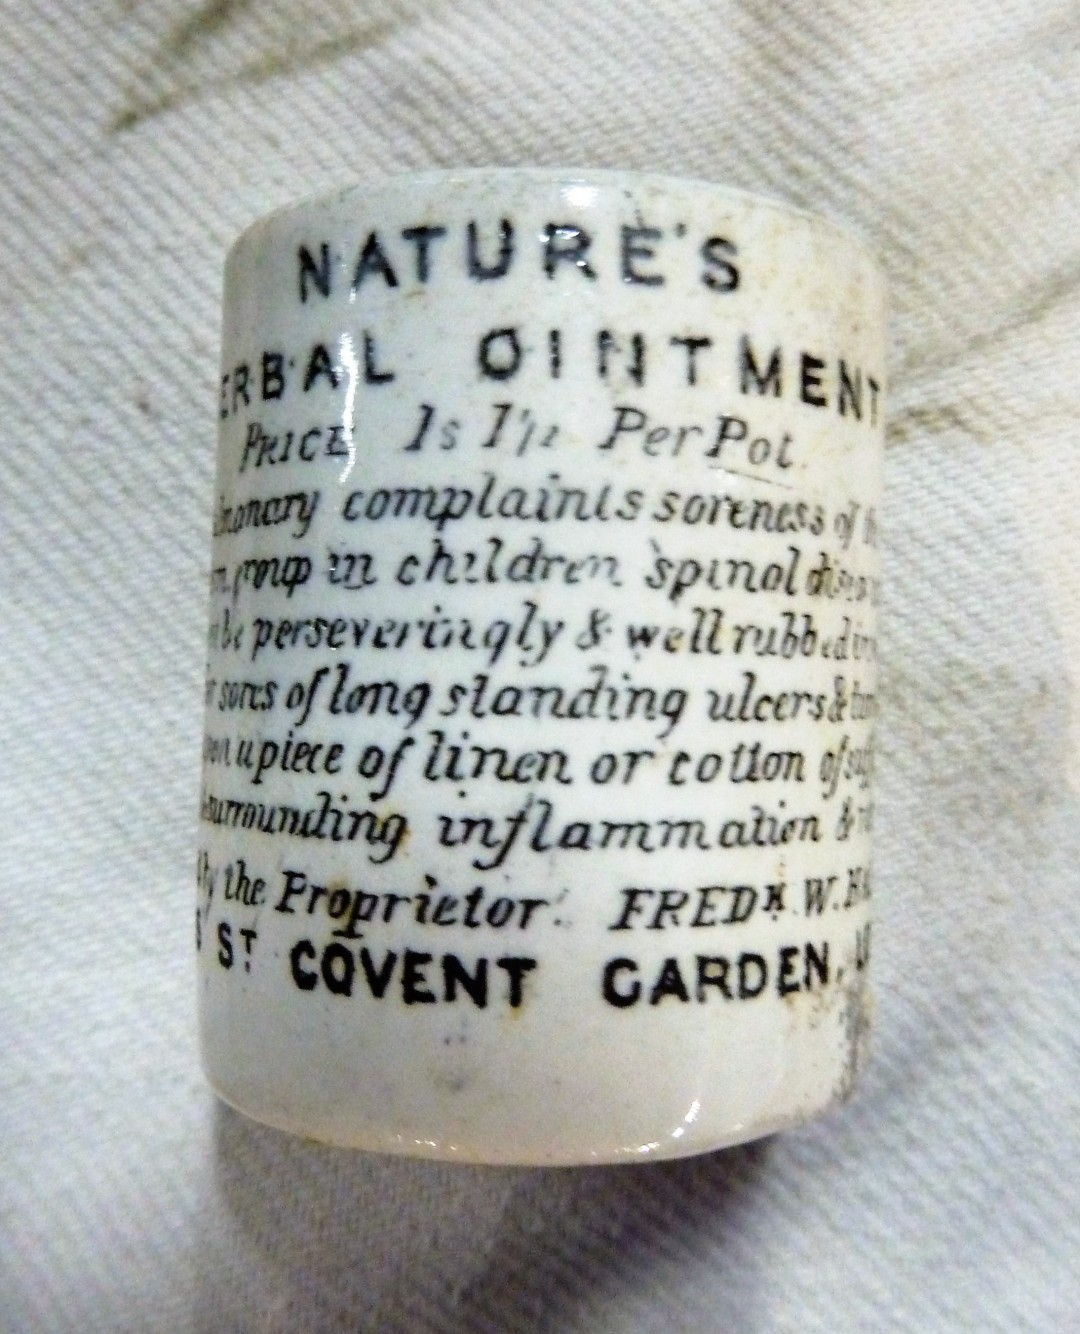 Nature's Herbal Ointment pot